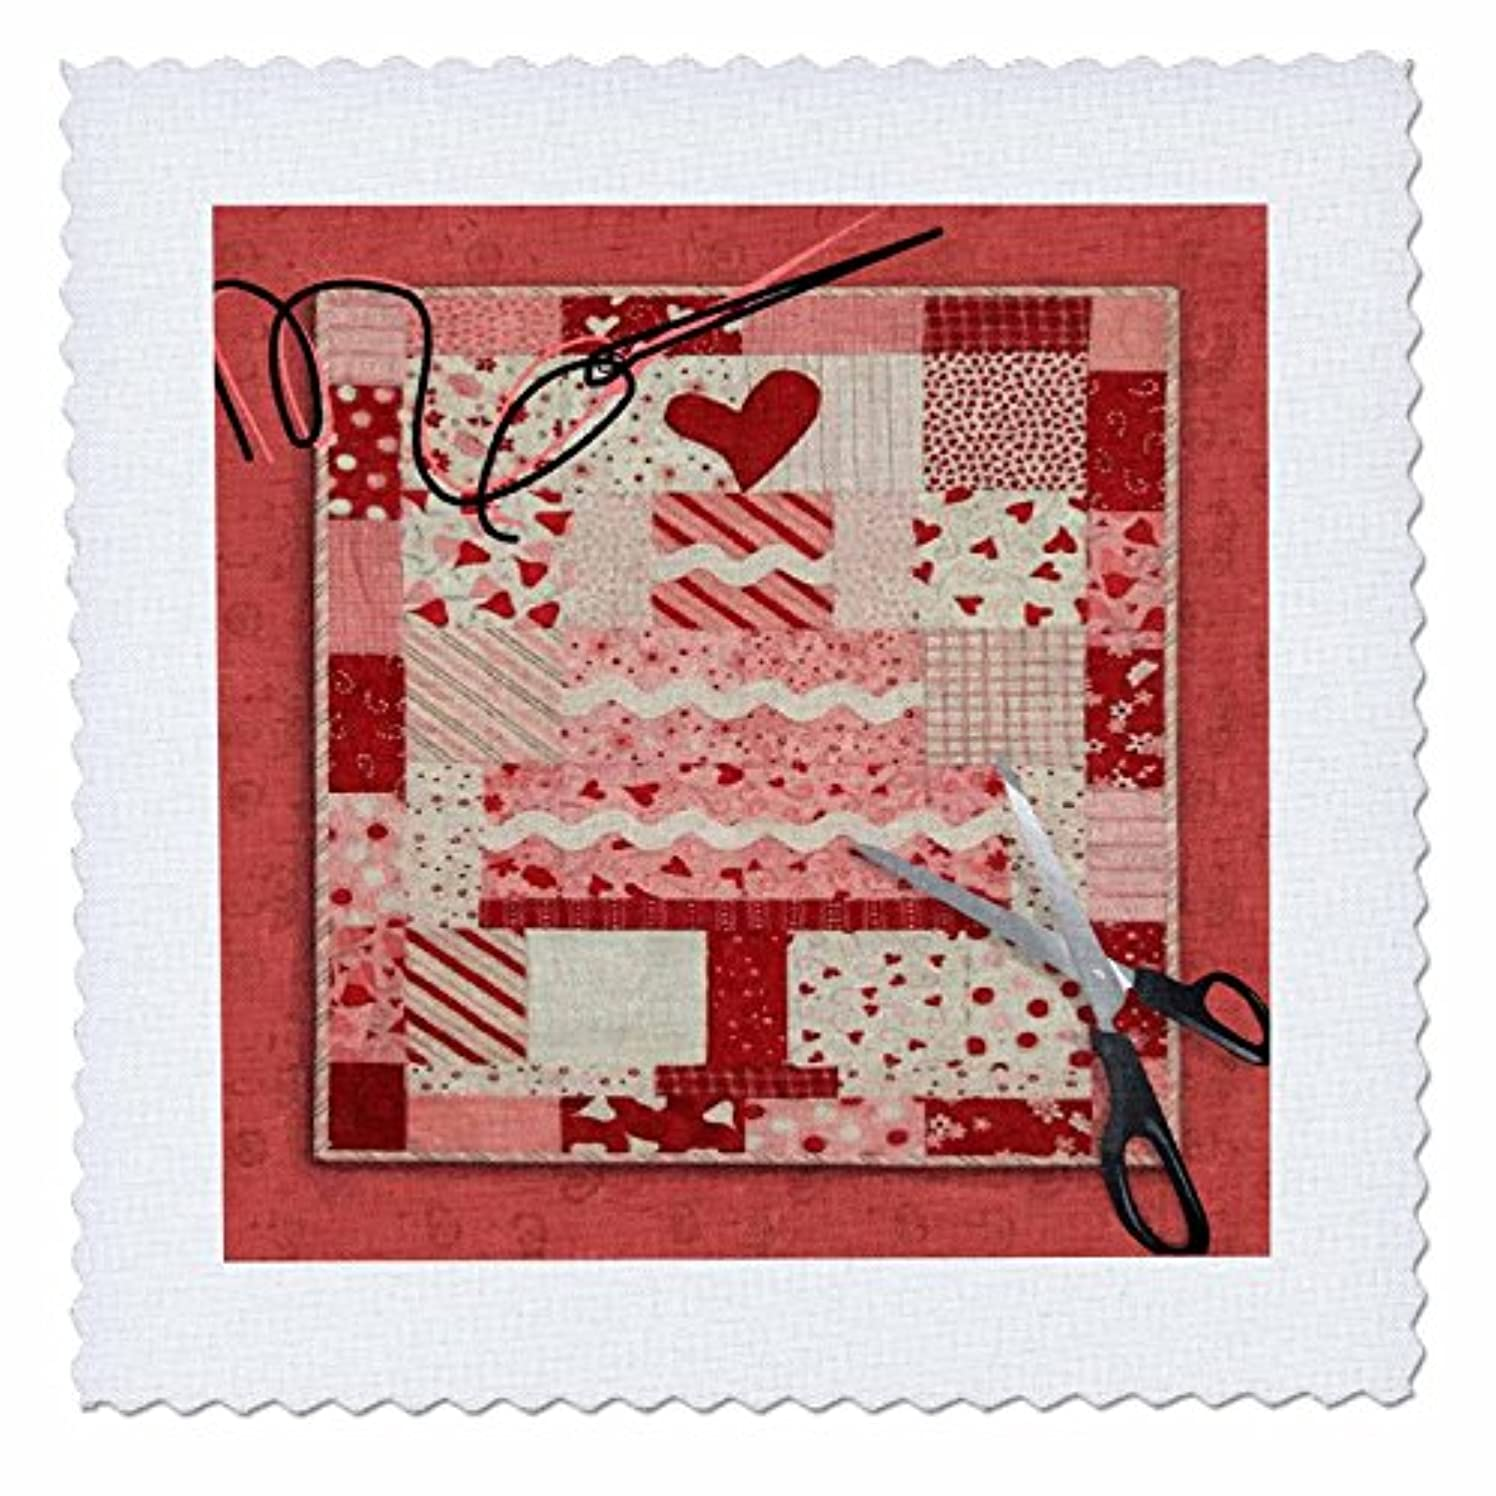 3dRose Susan Brown Designs General Themes - Quilting the Cake - 8x8 inch quilt square (qs_18362_3)